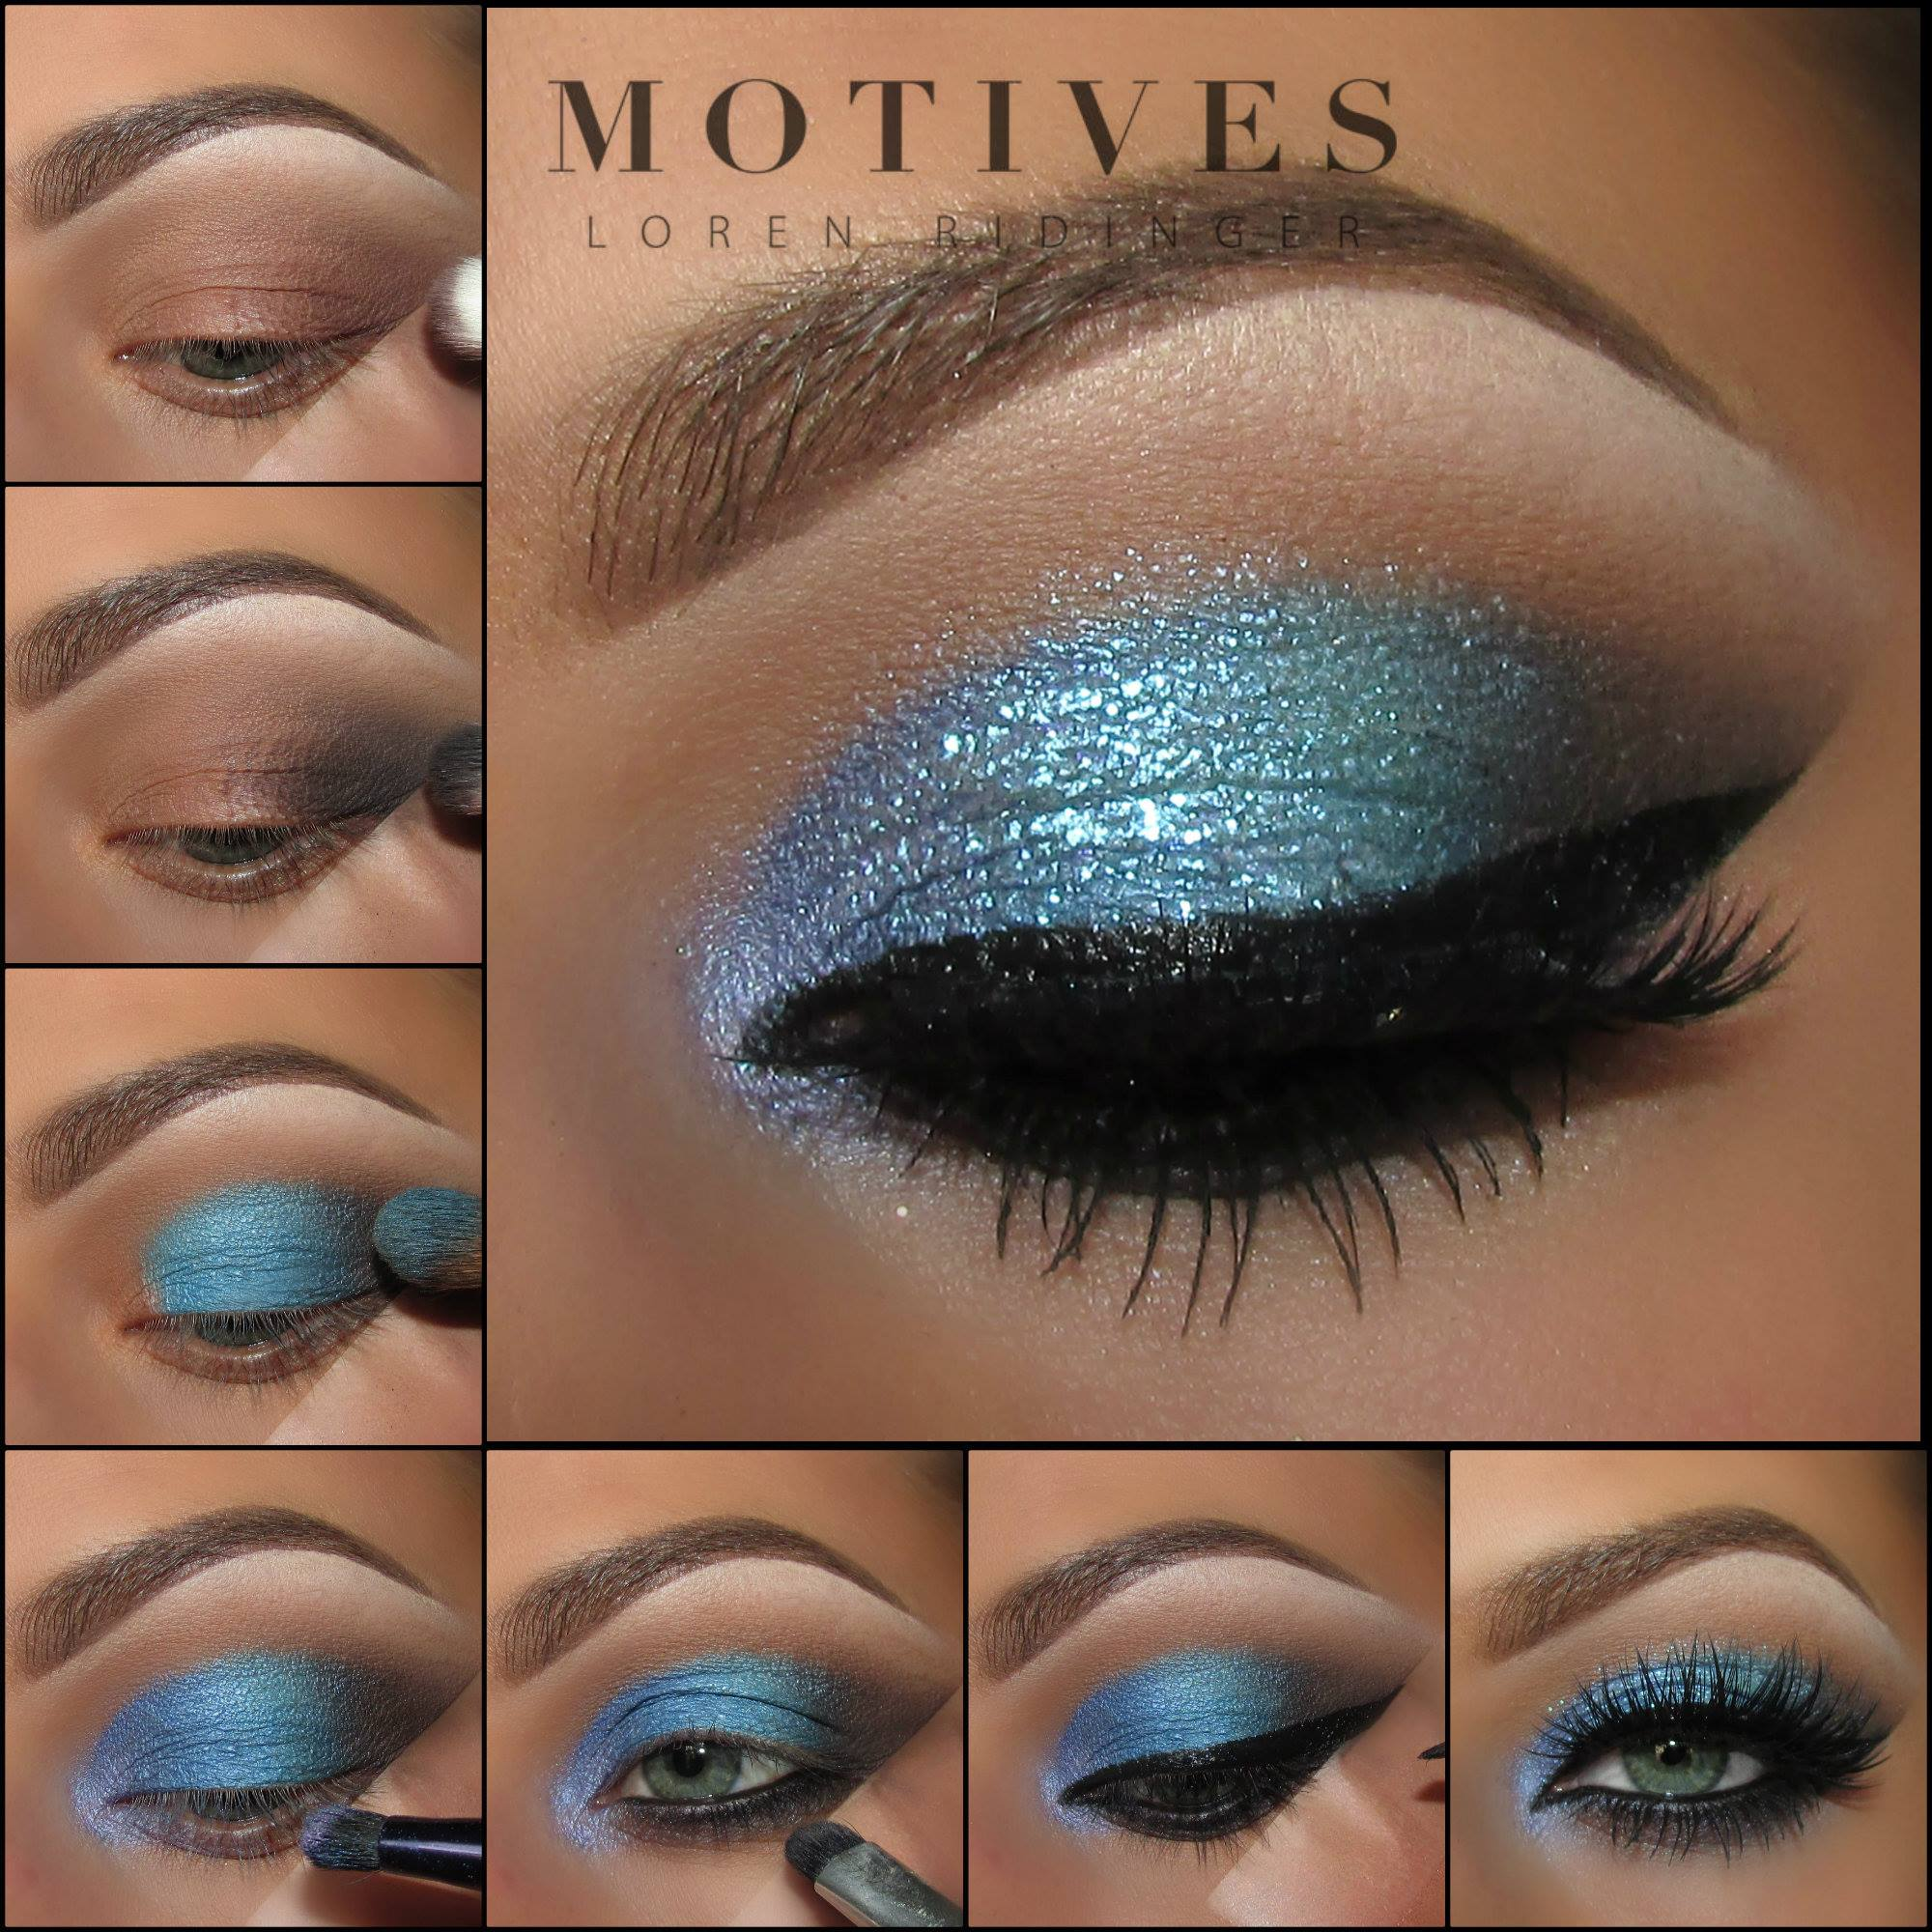 motives-eyes69.jpg